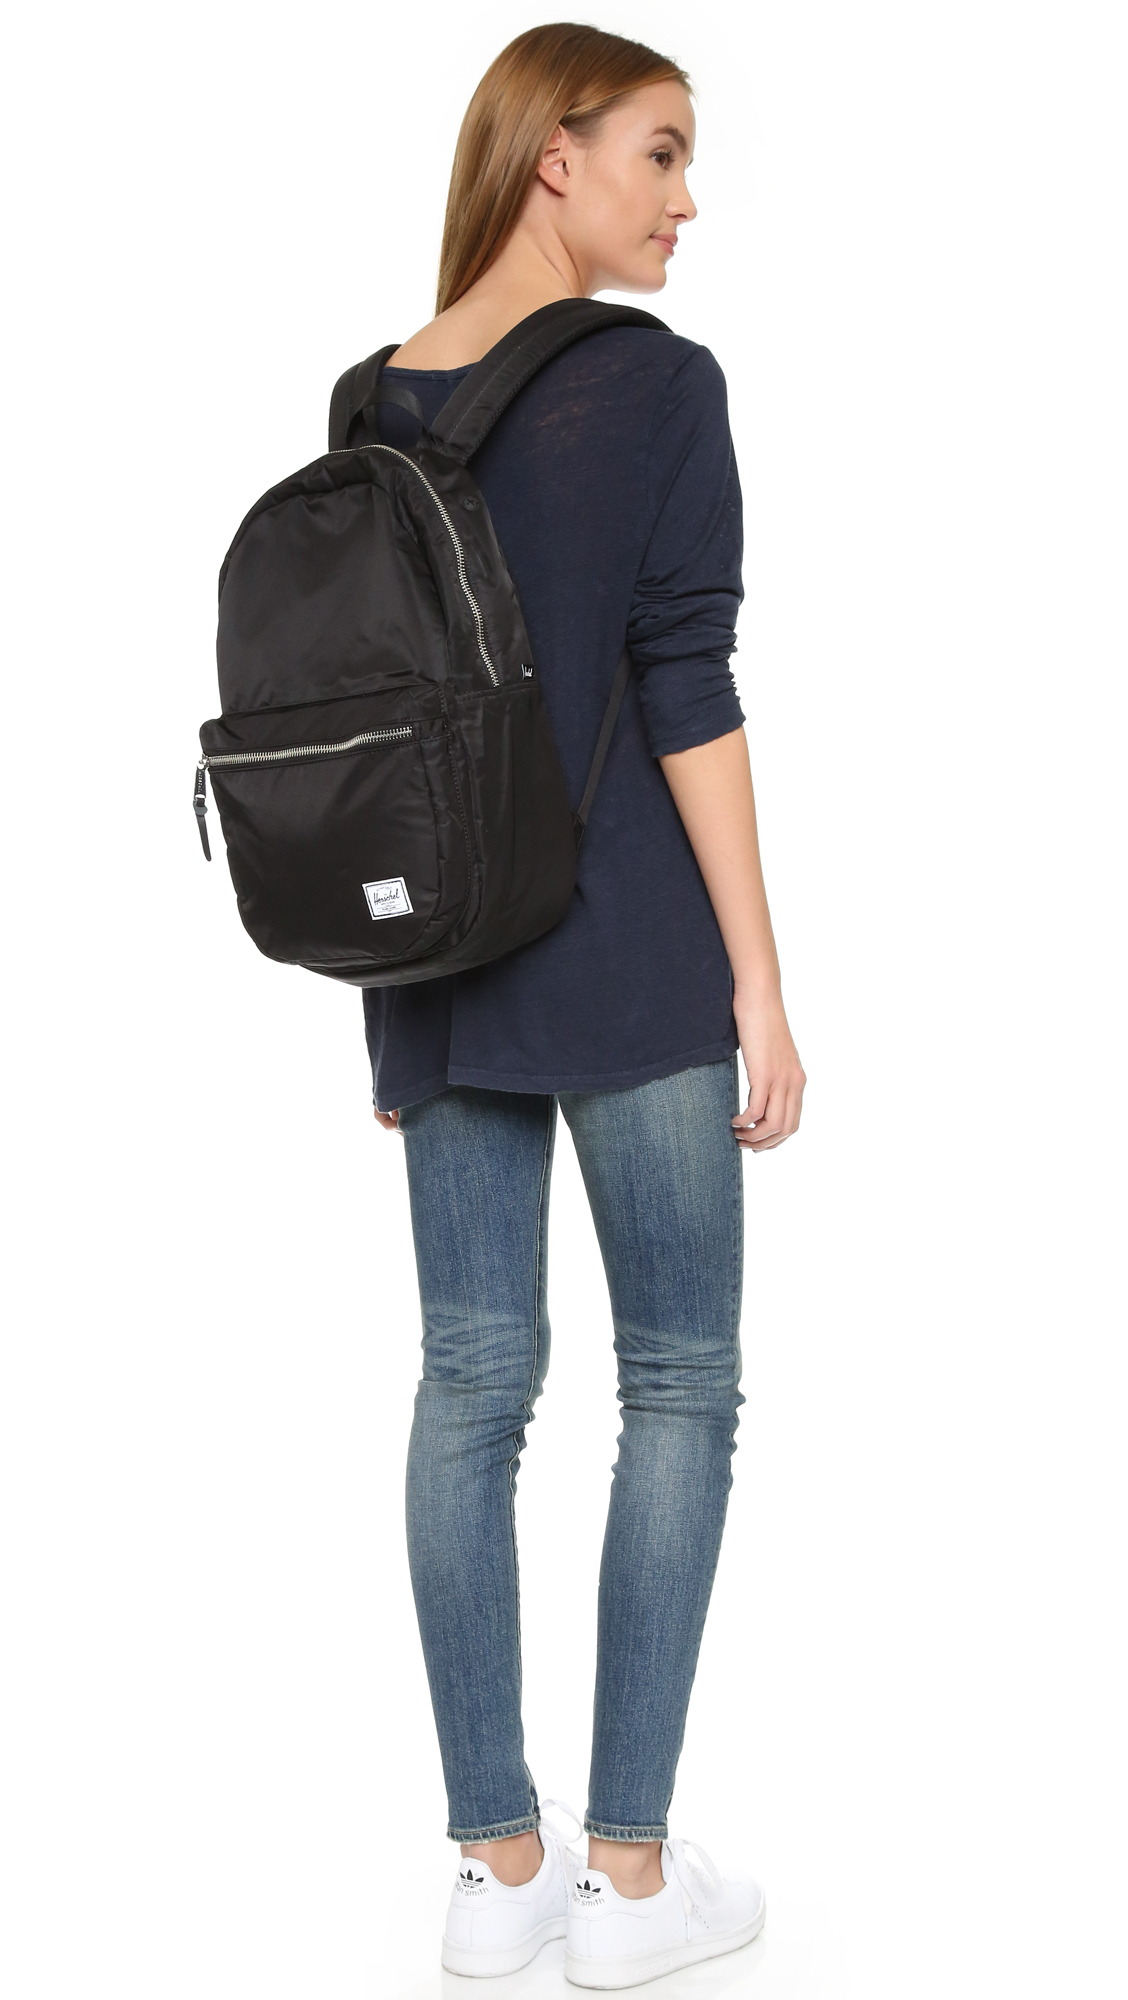 a7b1a2acd4 Lyst - Herschel Supply Co. Lawson Backpack - Black in Black